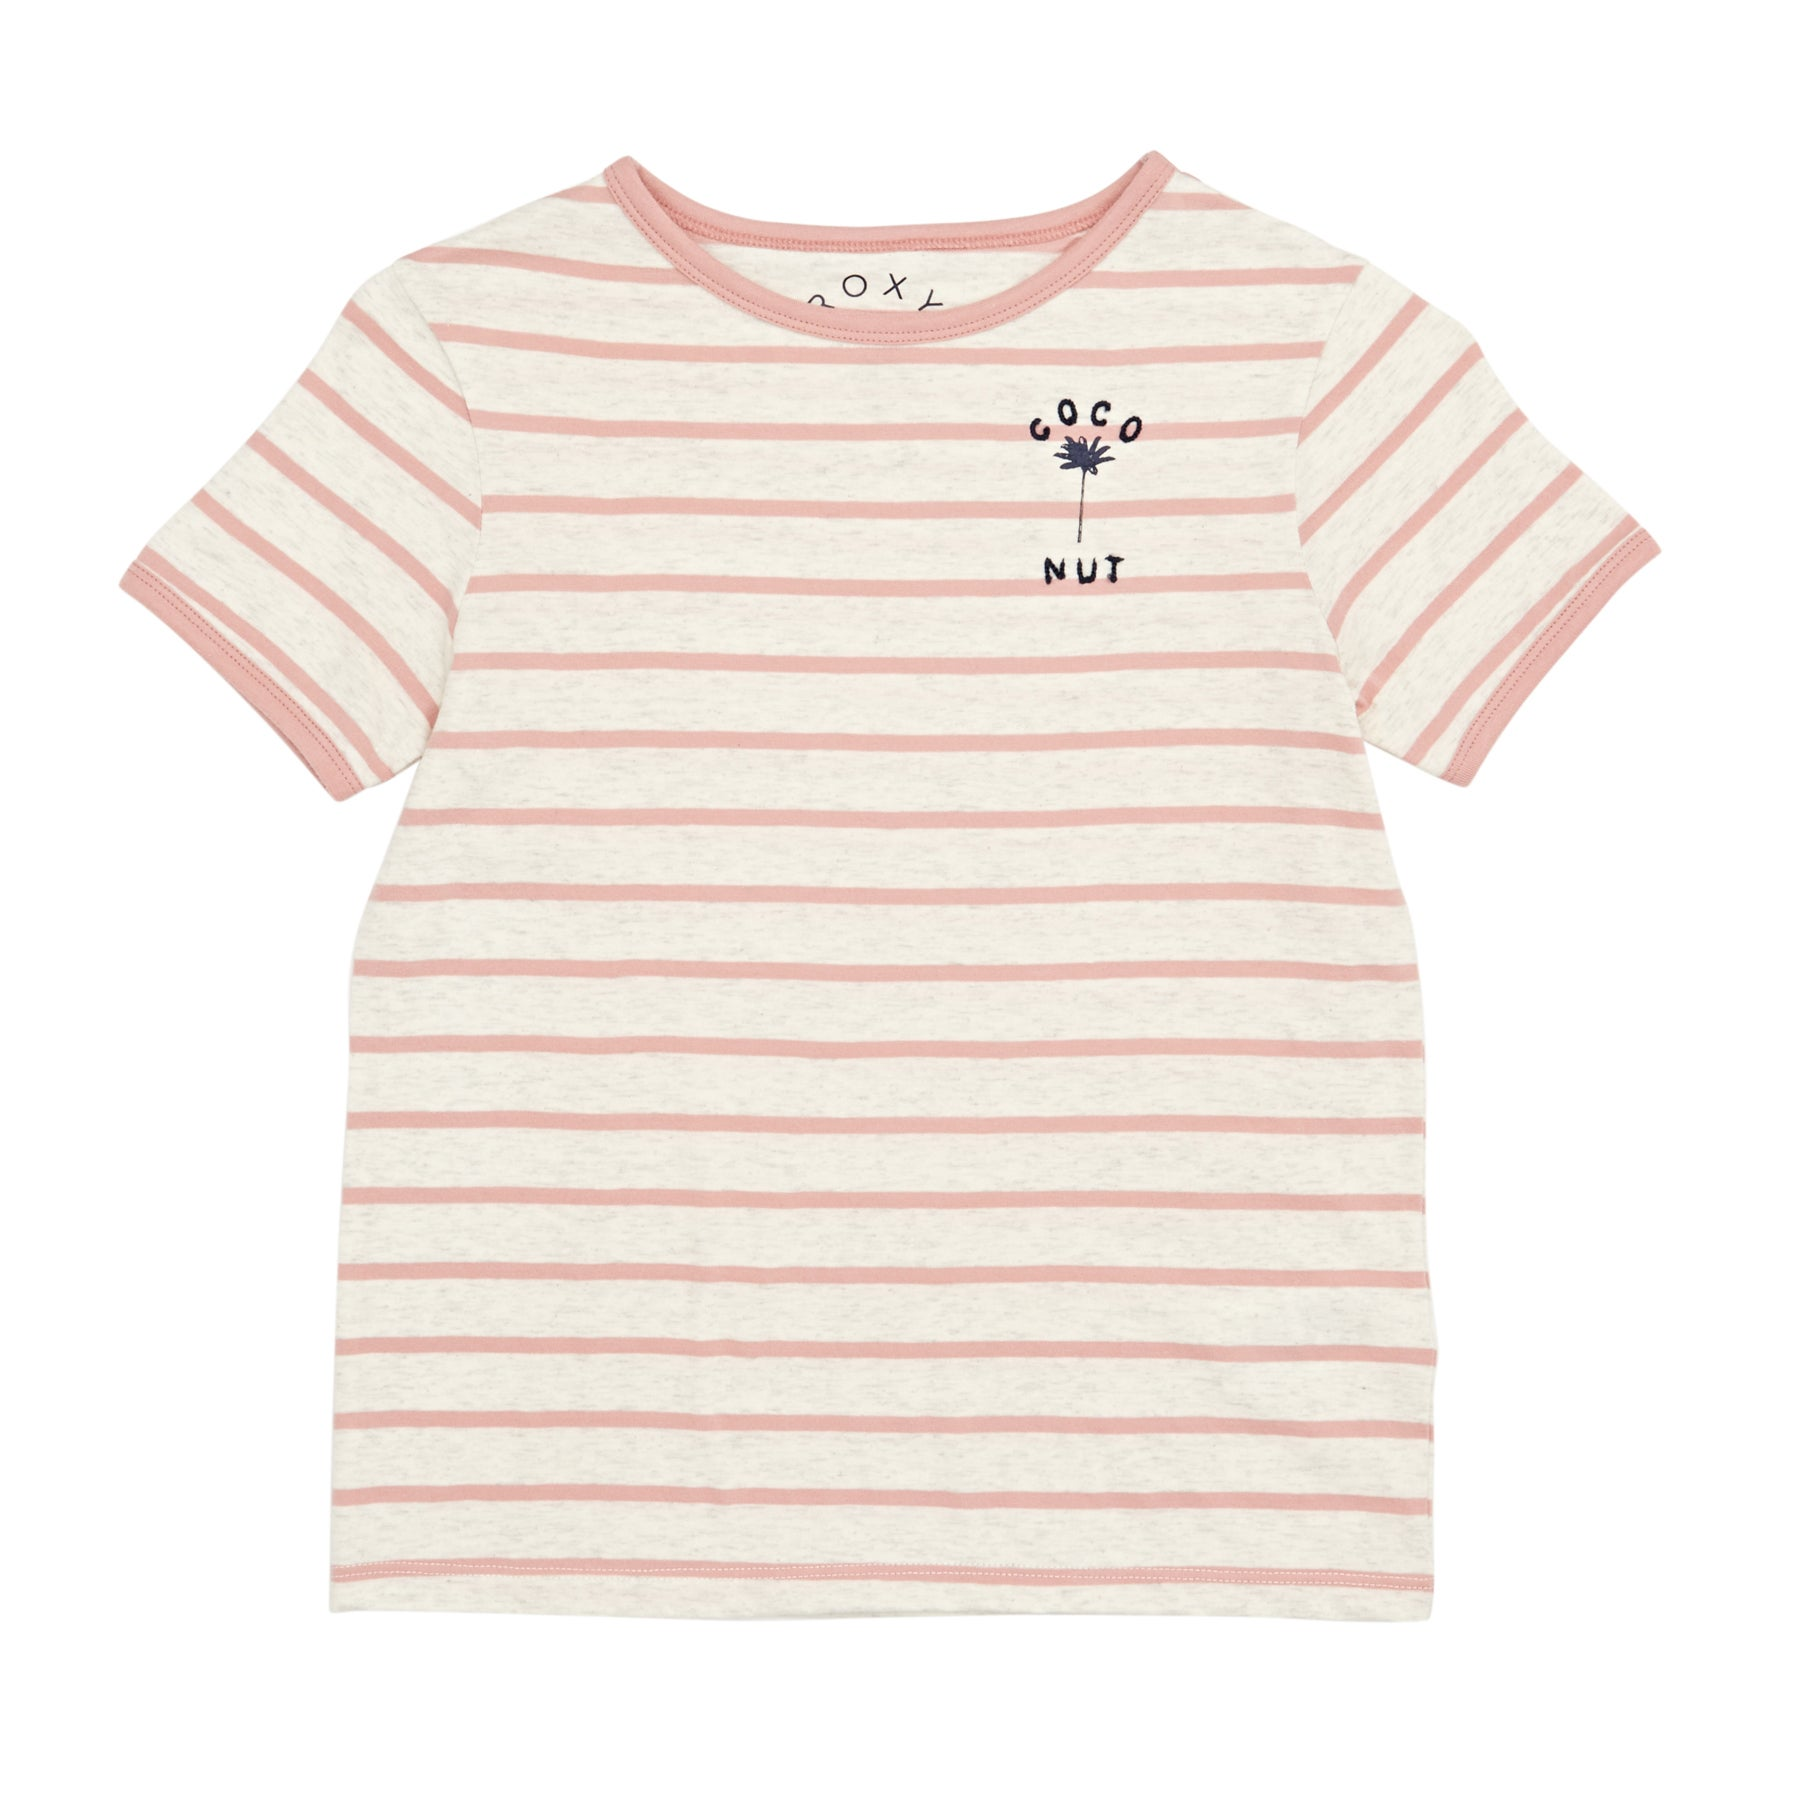 Camiseta de manga corta Girls Roxy Telling Stories - Rose Tan Heather Nautic Stripe